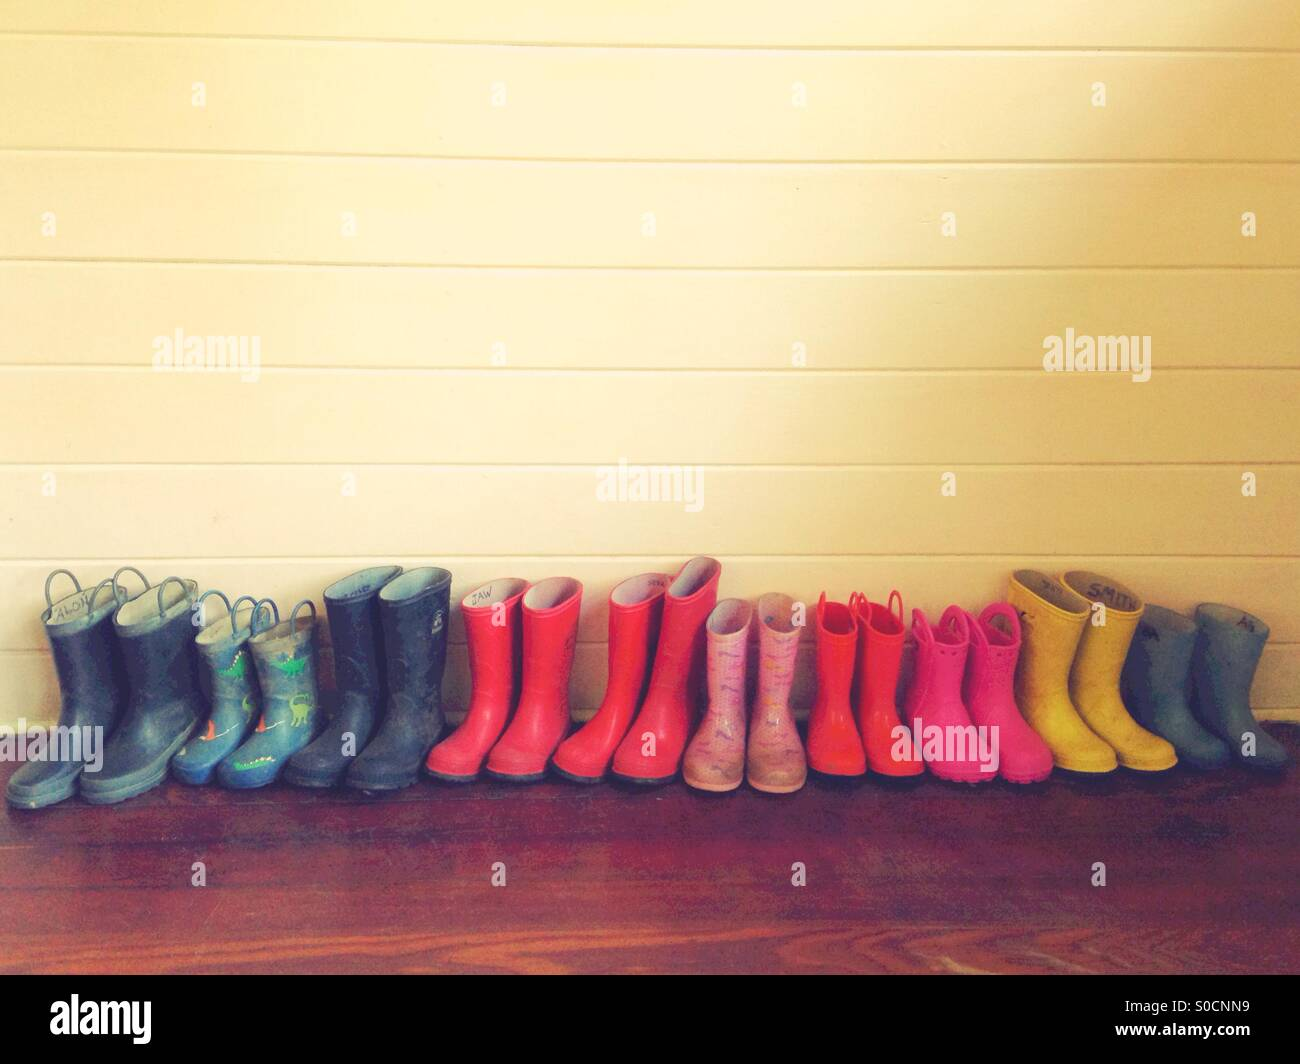 A row of children's colorful rain boots. - Stock Image